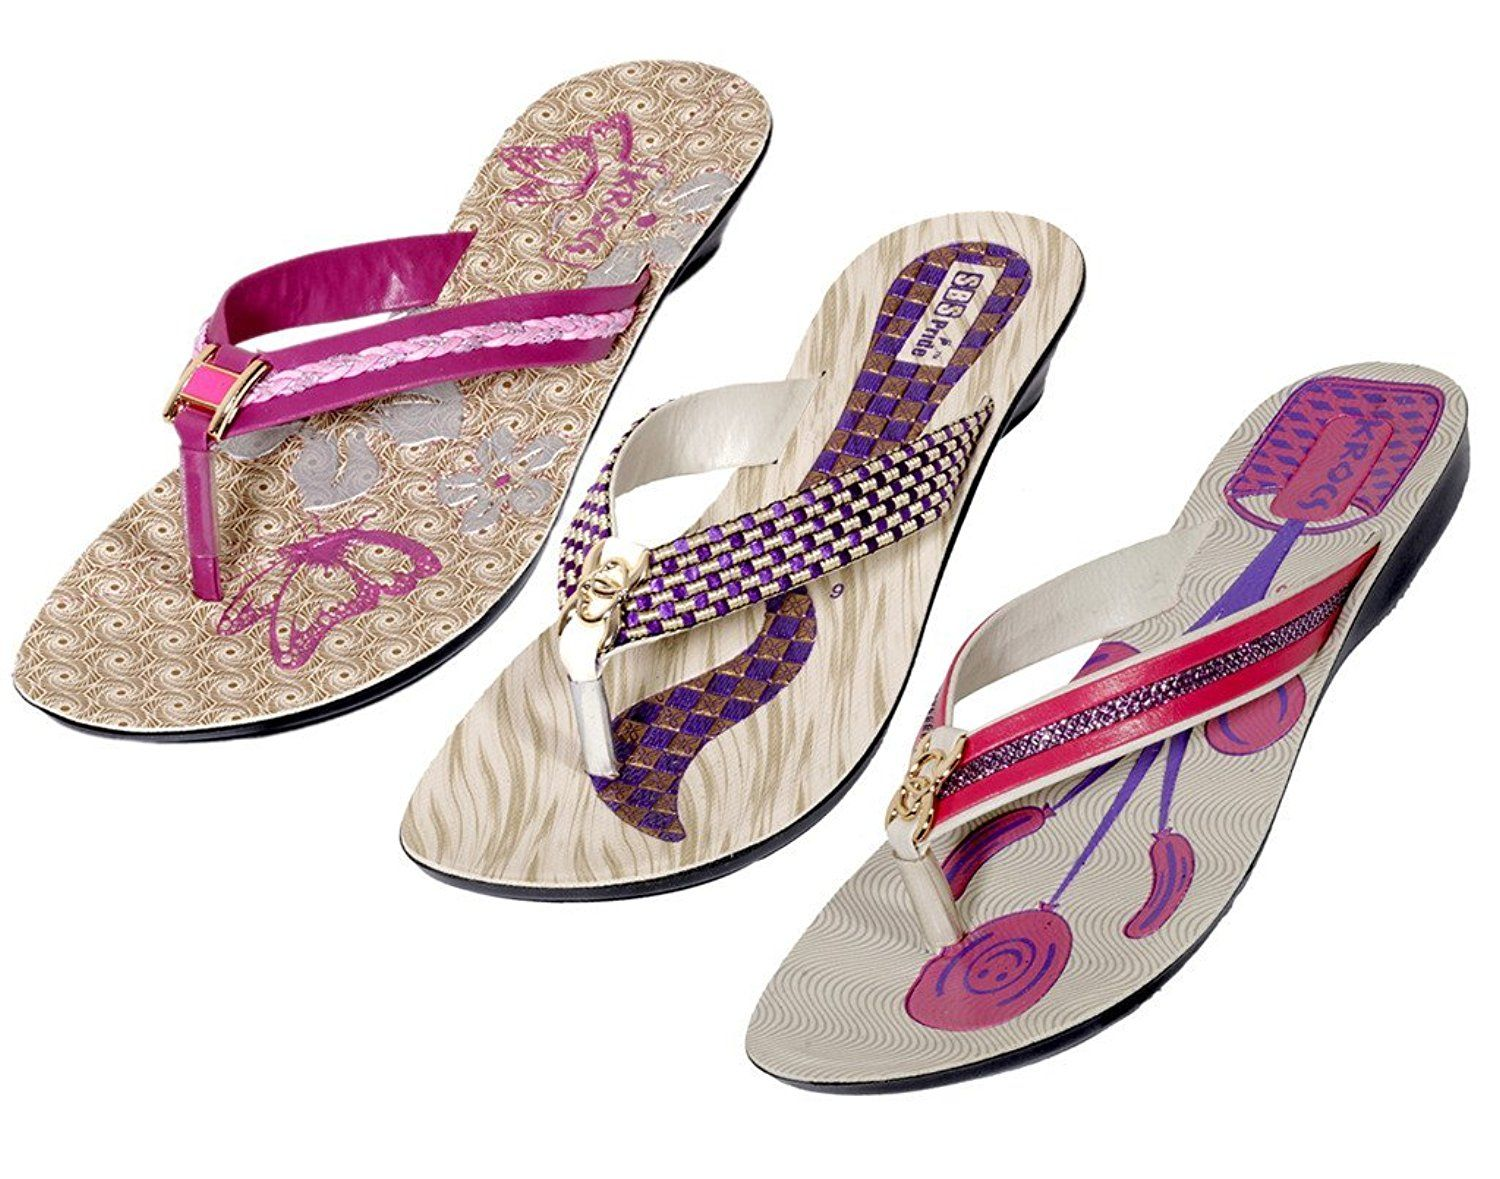 Indistar Women's PU Krocs Flip Flop(Set Of 3 Pair) >>> Check this awesome product by going to the link at the image.